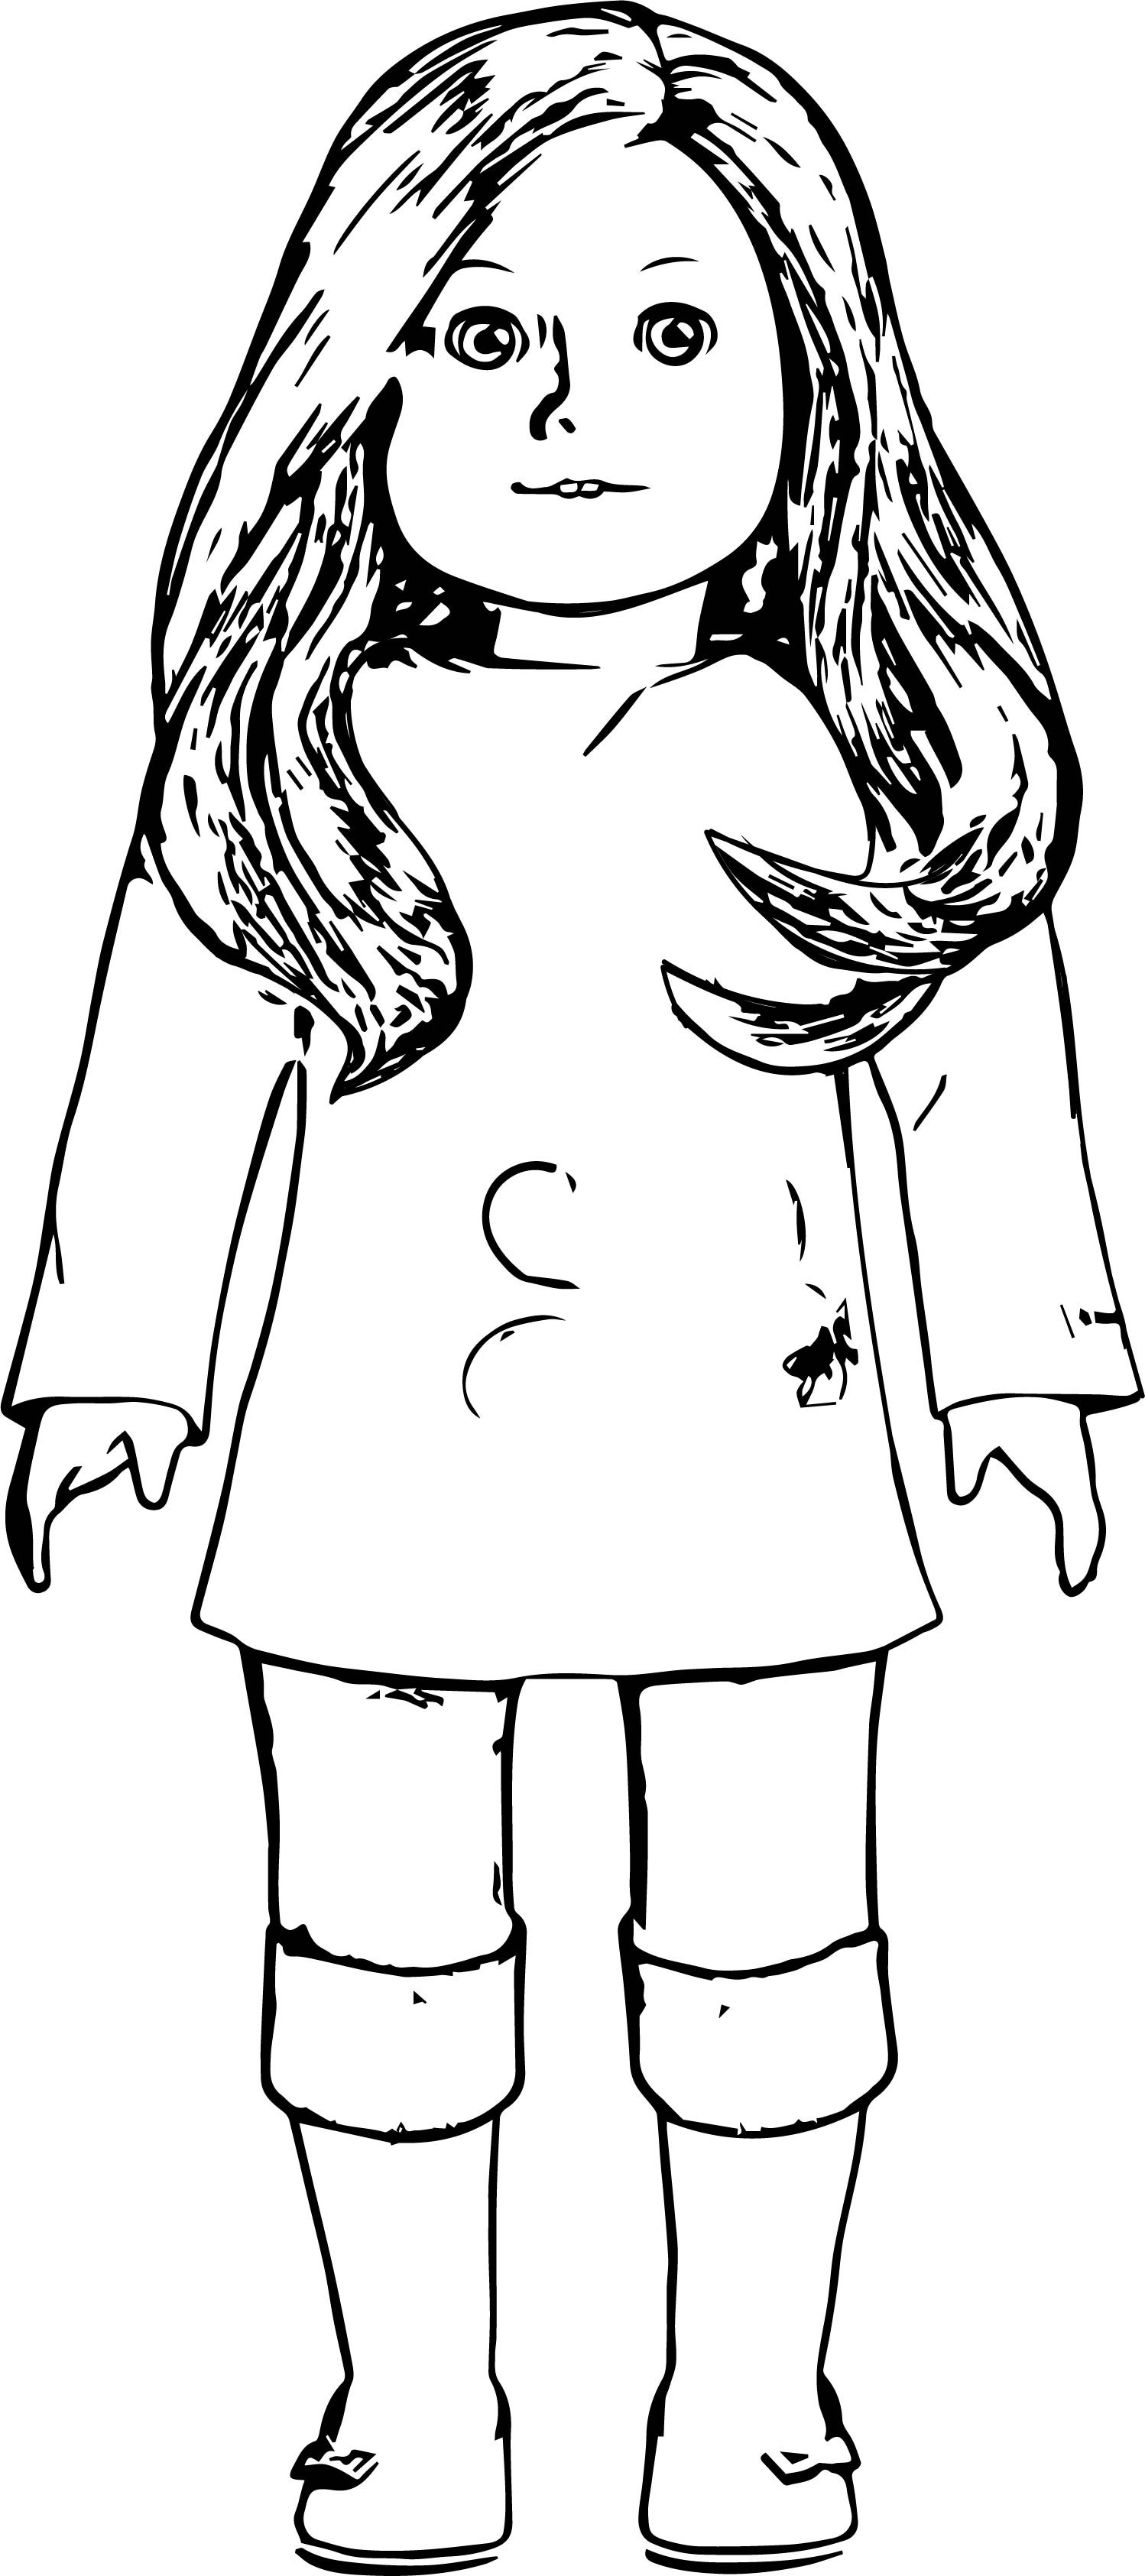 picture of girl coloring page adult coloring page girl portrait and leaves colouring coloring picture girl of page